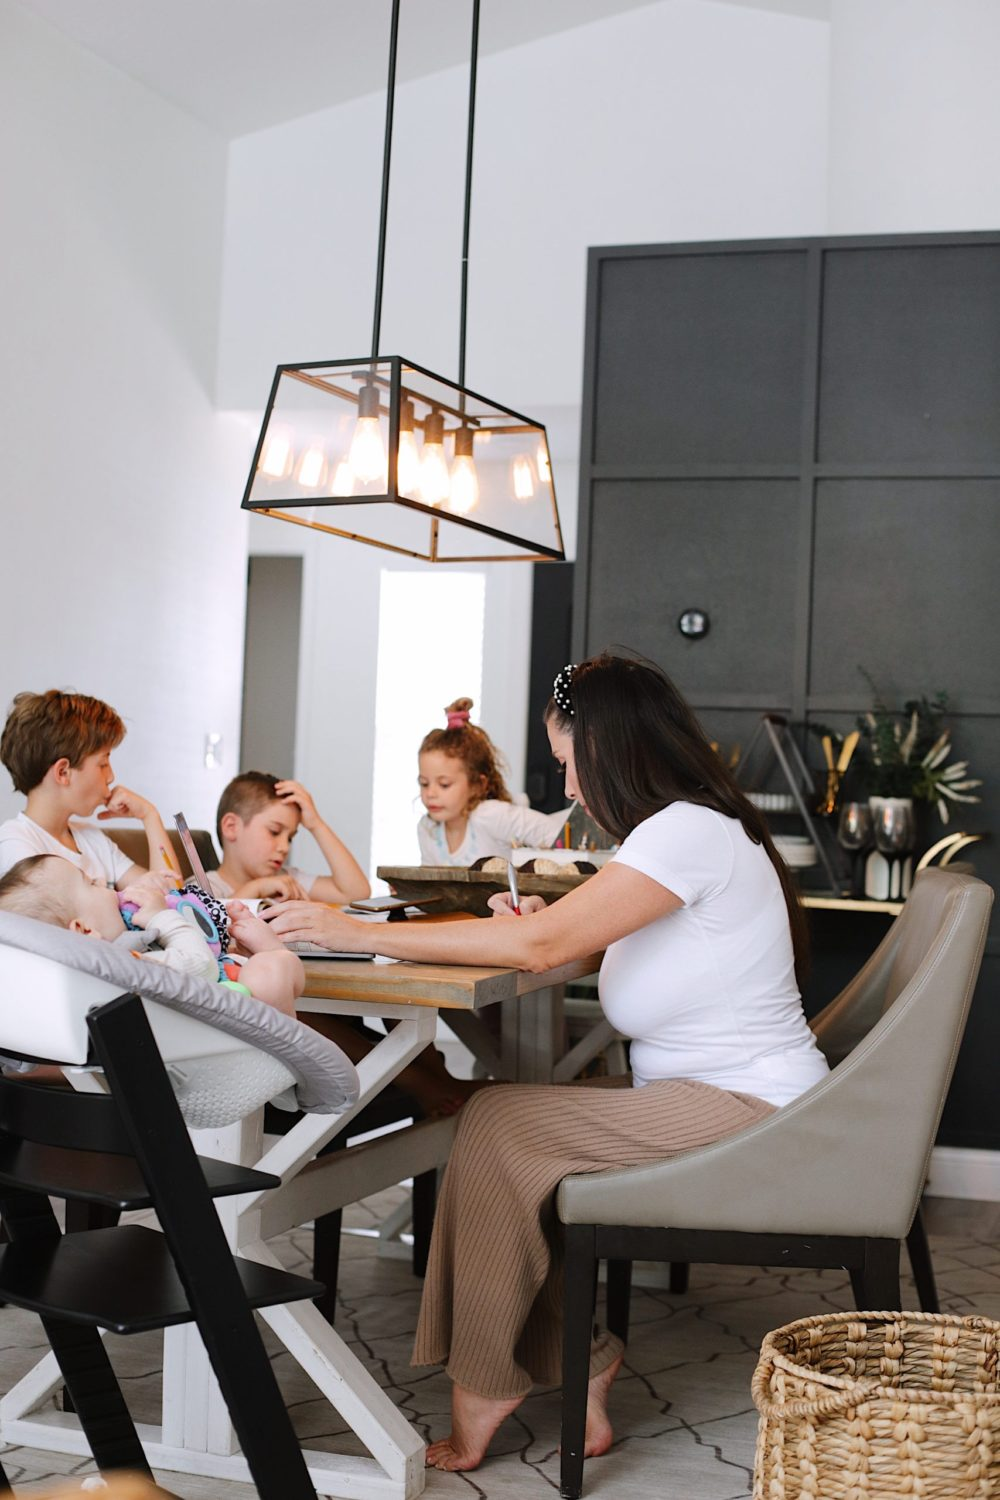 How to Survive Working With Kids at Home - Tips for making the most of working from home with kids homeschooling. Click through for tips from lifestyle blogger Tabitha Blue of Fresh Mommy Blog! | Working From Home With Kids by popular Florida lifestyle blog, Fresh Mommy Blog: image of a mom sitting at the table with her kids as they do homeschooling work.